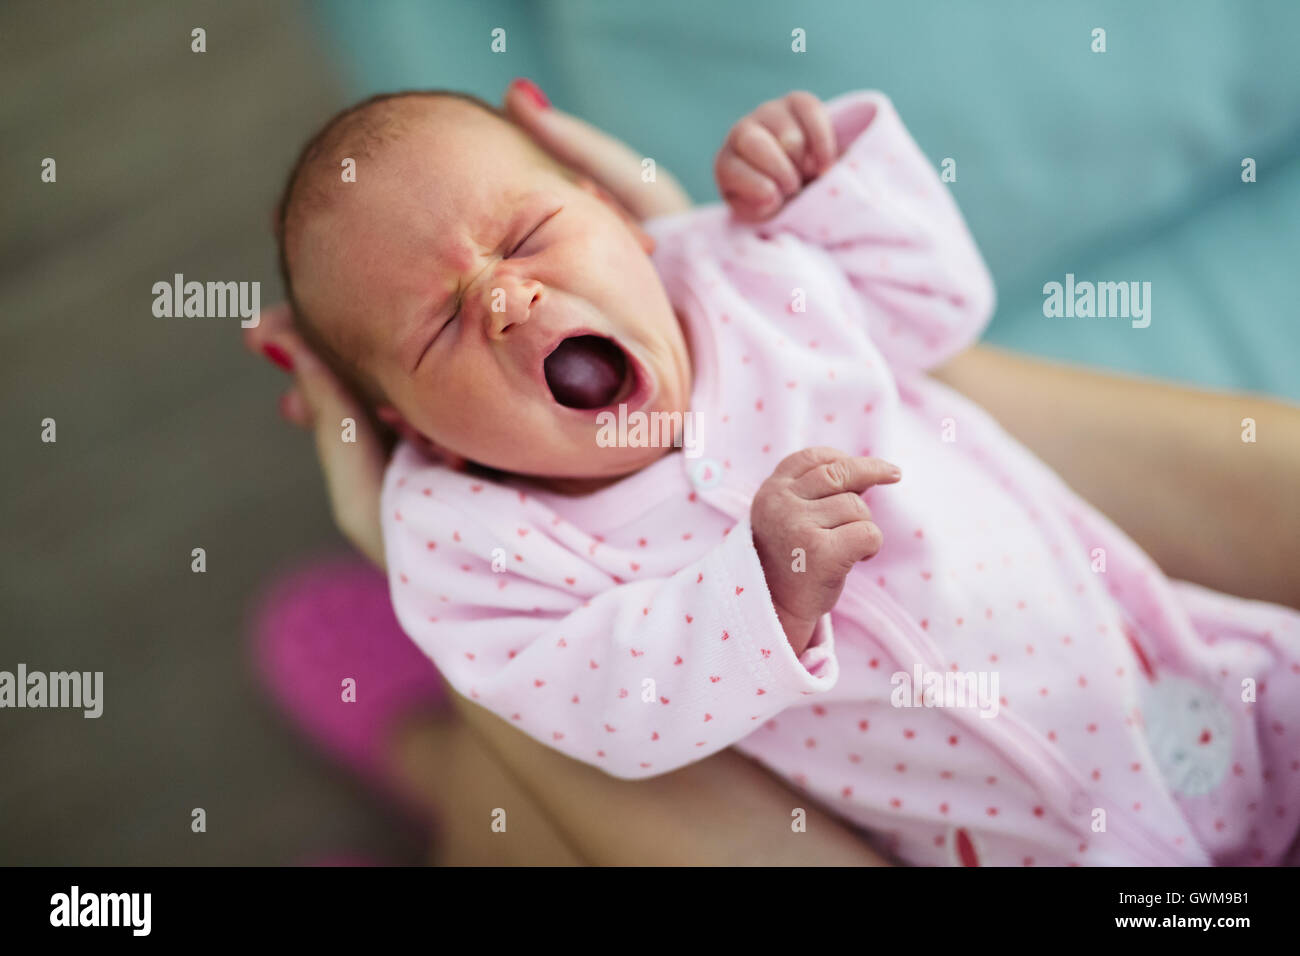 Screaming cute babies and restless nights are inevitable - Stock Image